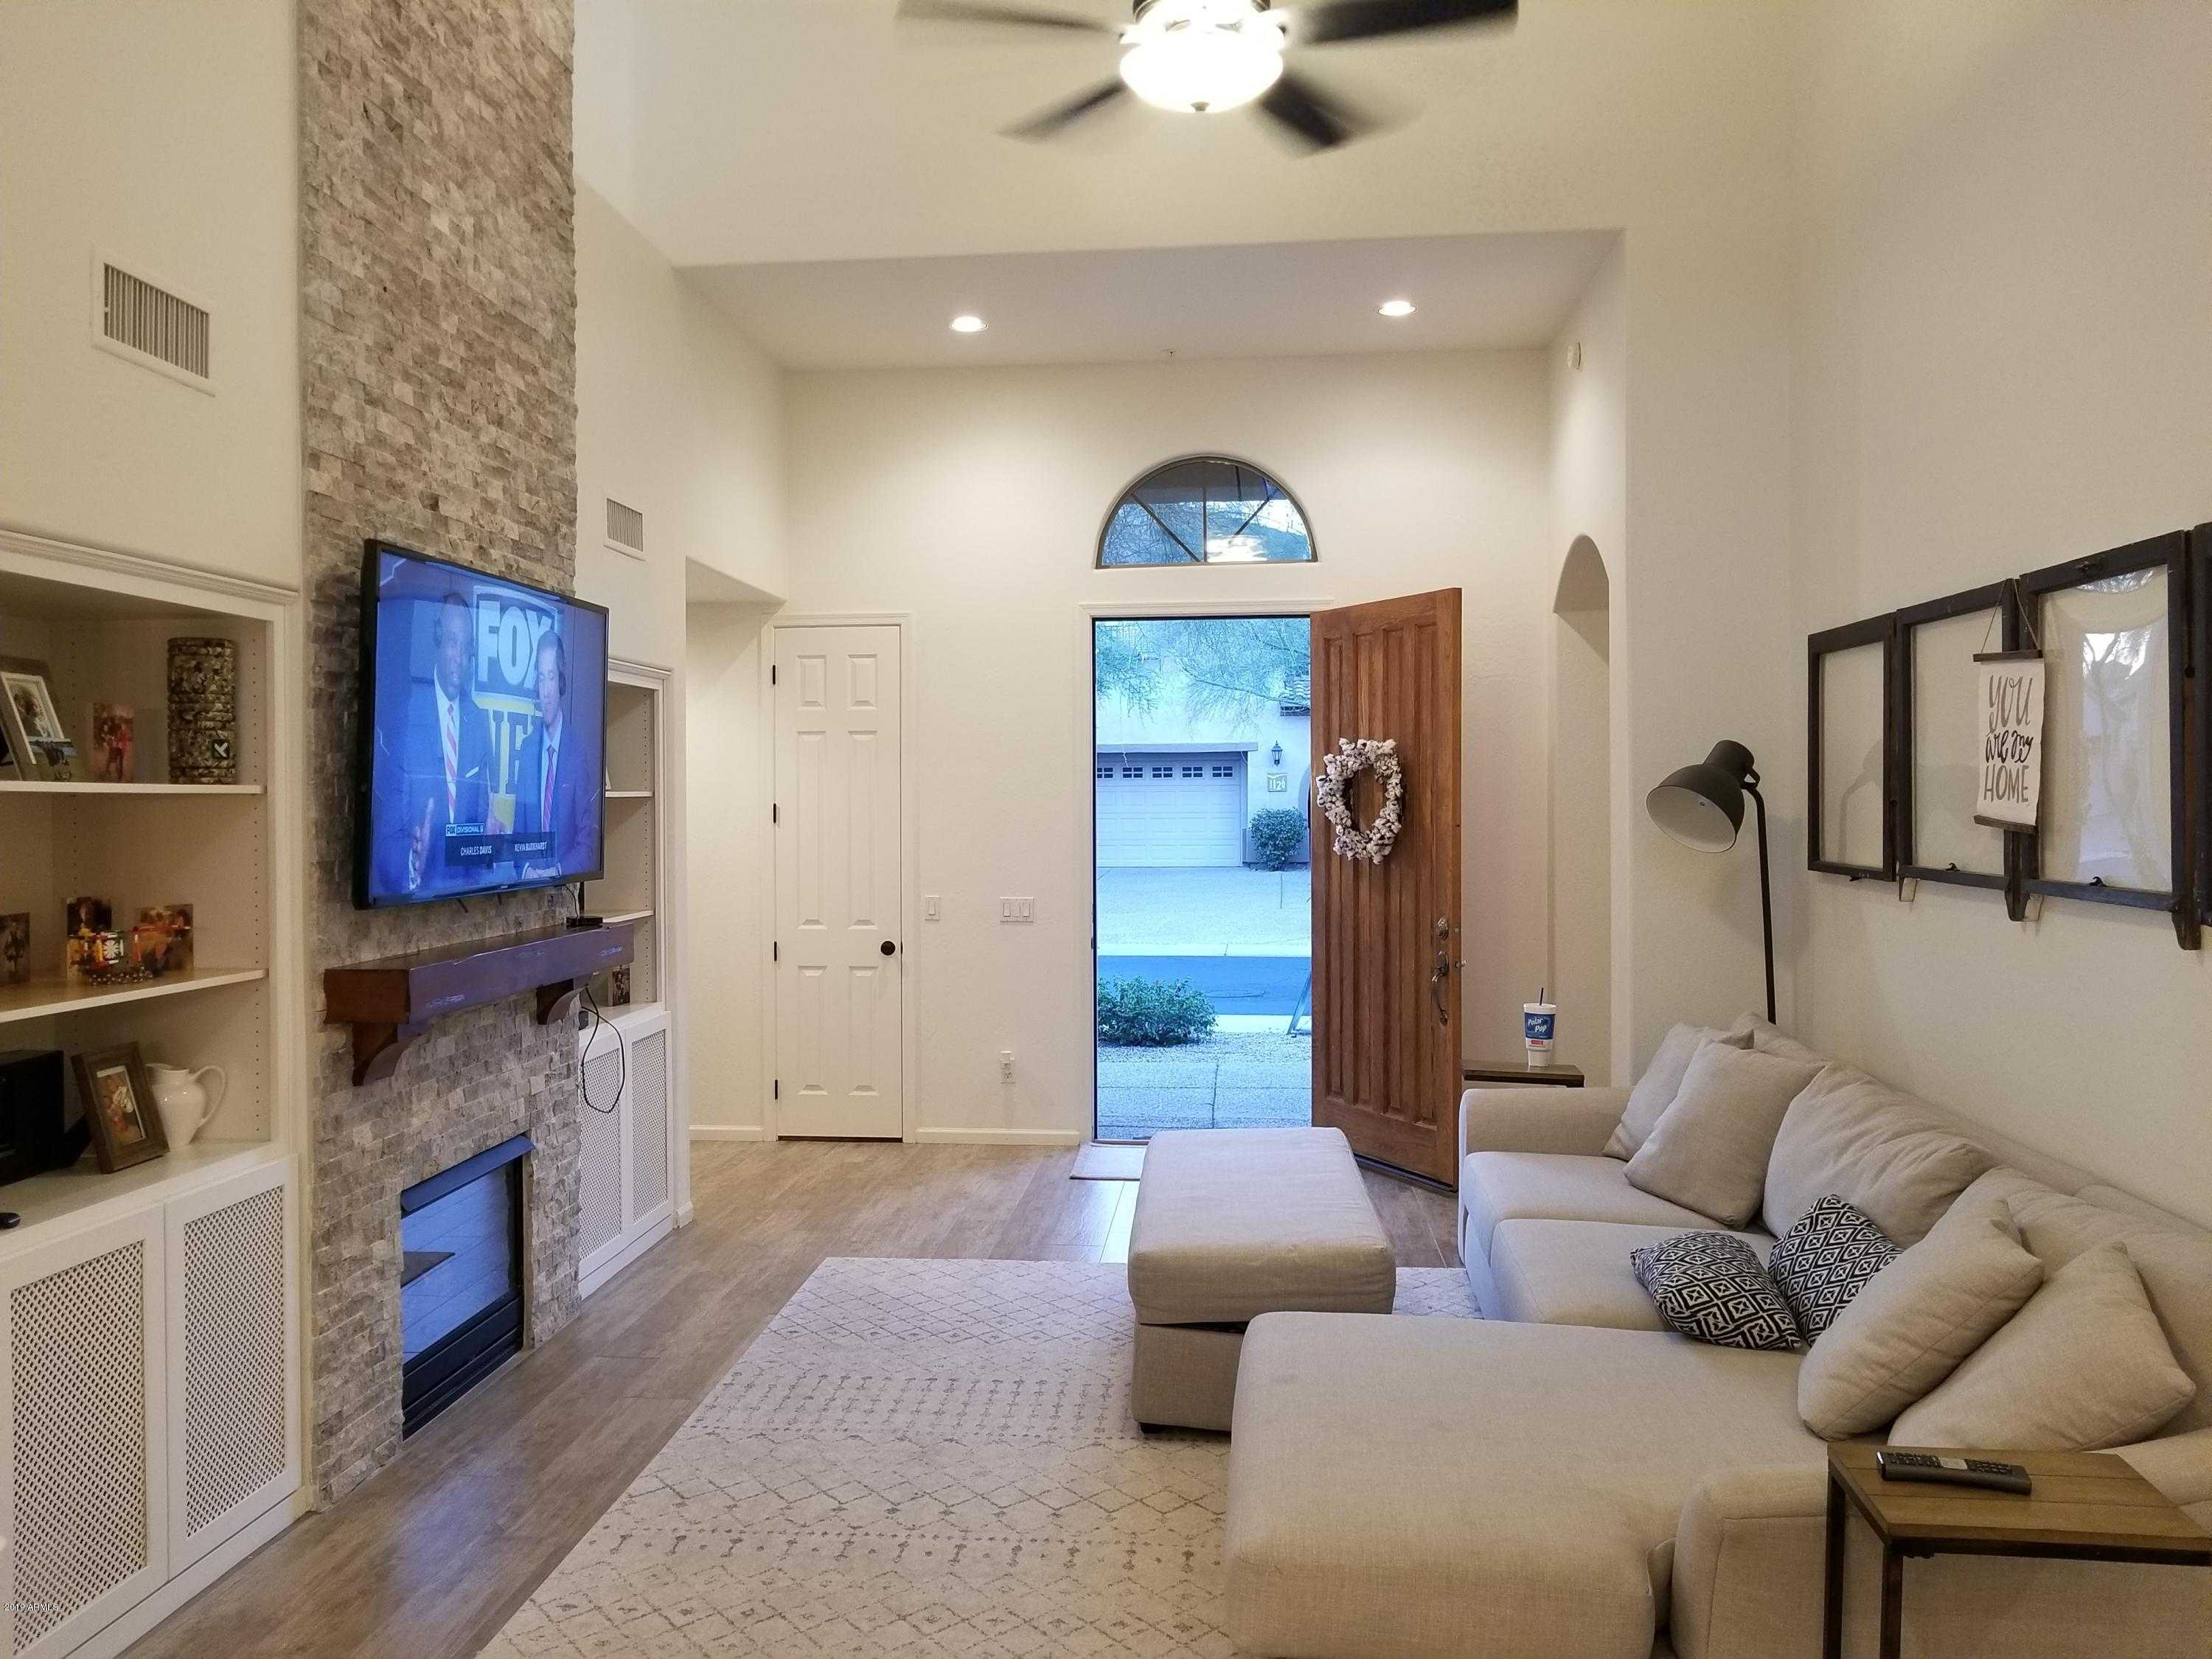 $549,000 - 4Br/4Ba -  for Sale in Avian At Grayhawk Condominium, Scottsdale